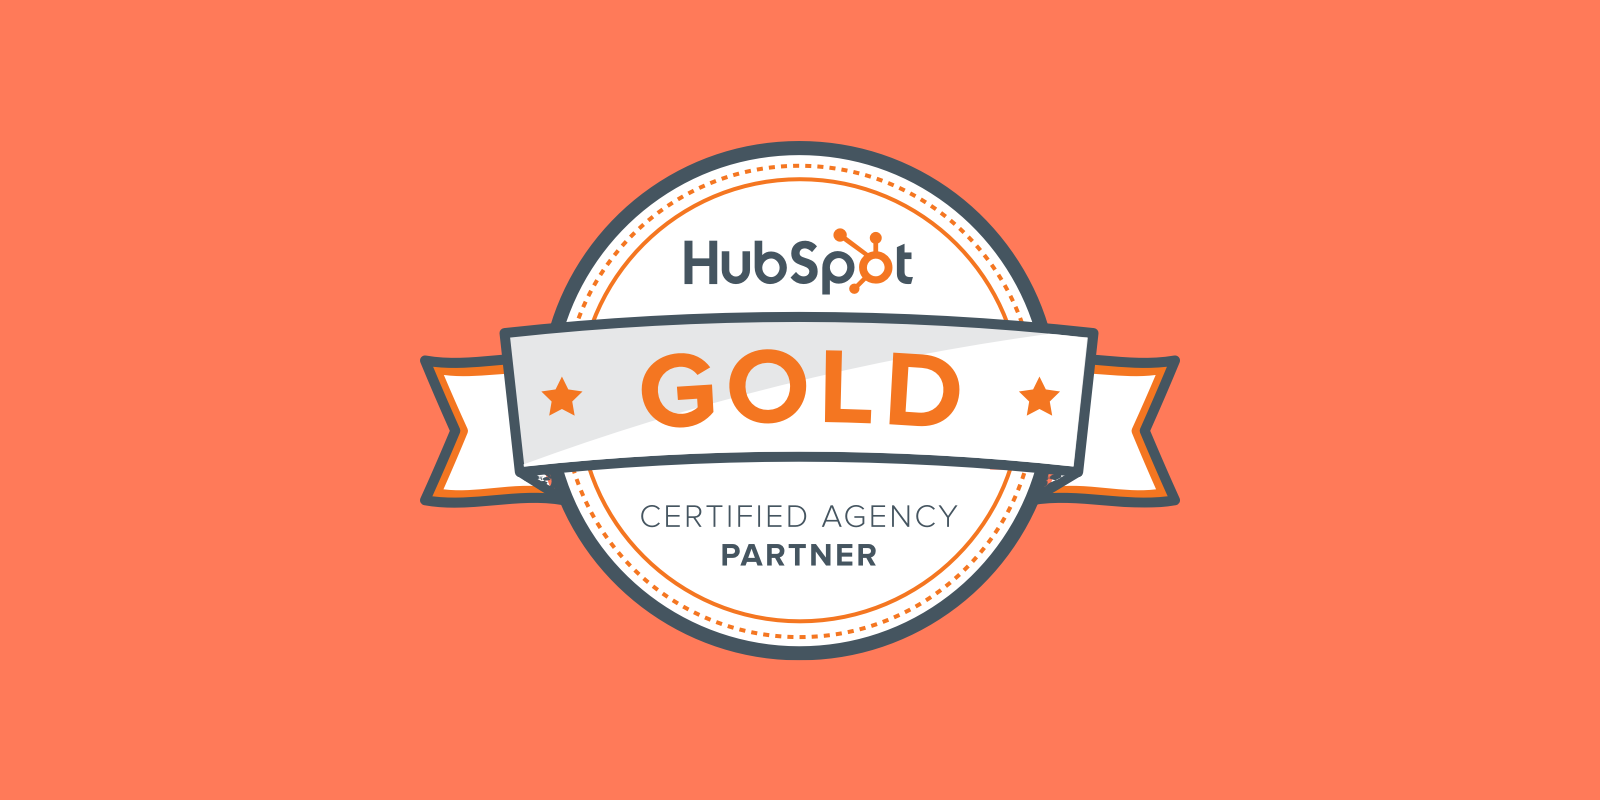 MO Agency HubSpot Gold Partner